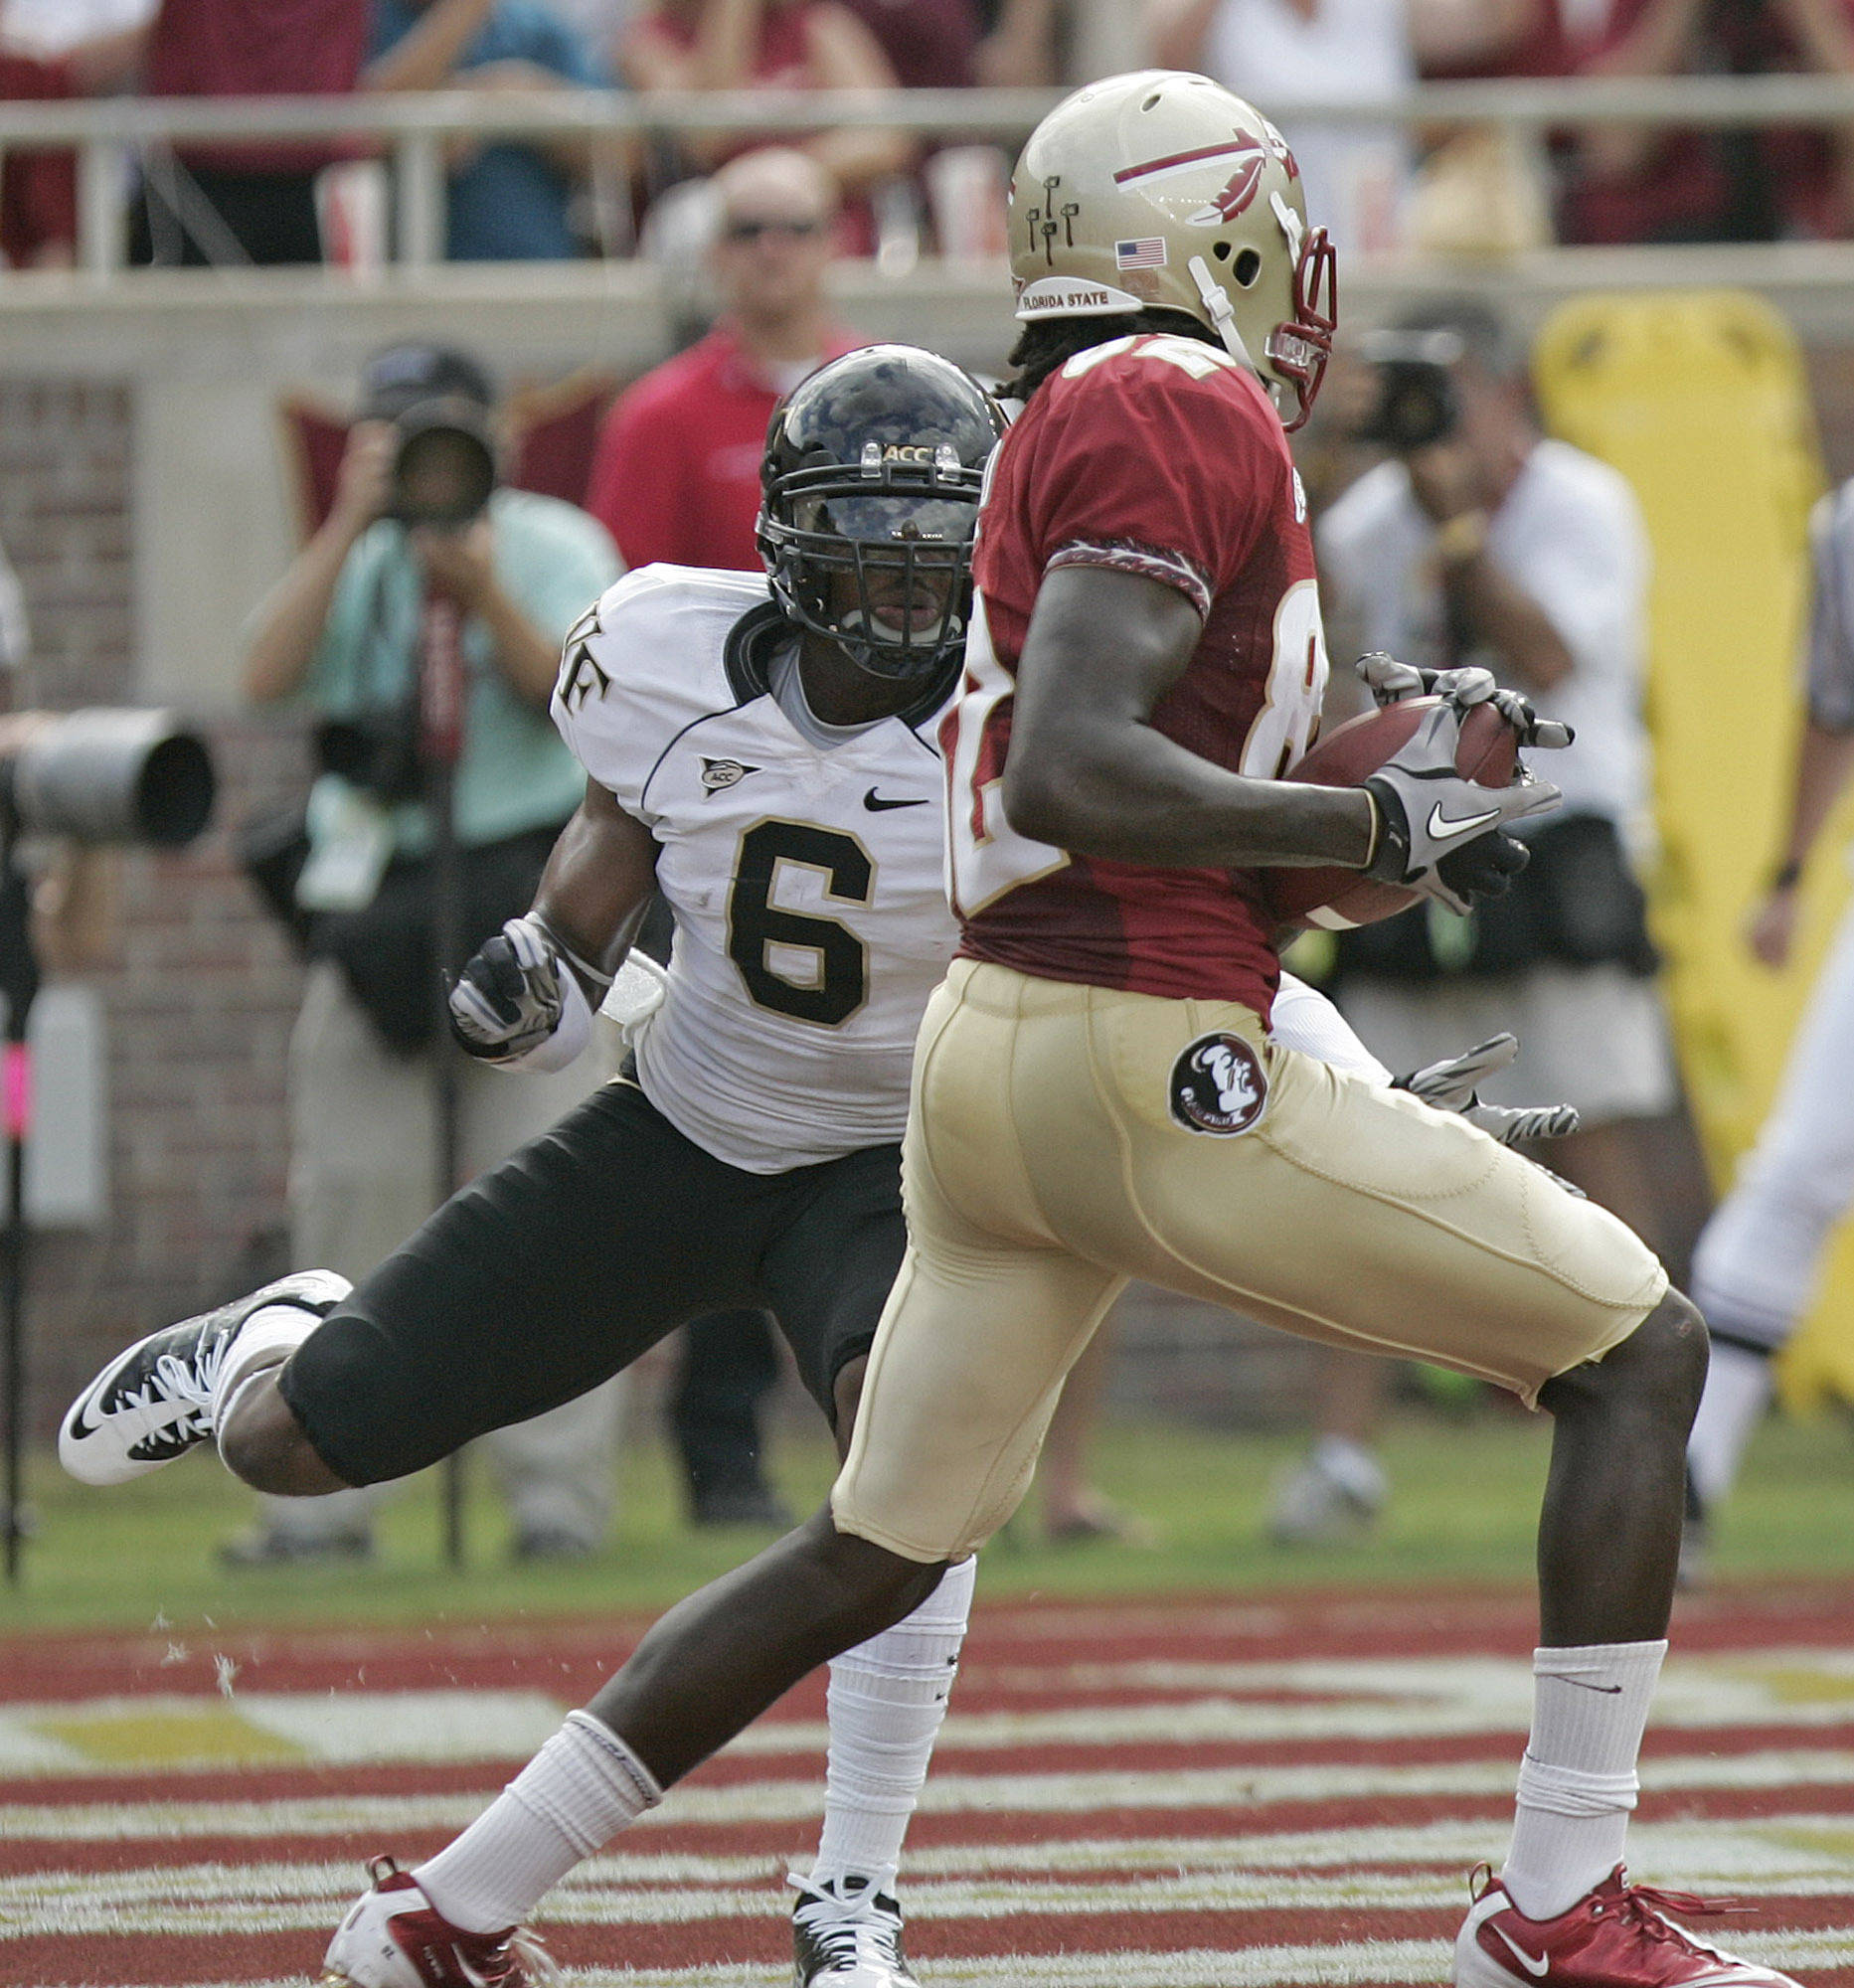 Florida State's Willie Haulstead, right, hauls in a touchdown pass in front of Wake Forest's Kenny Okoro in the second quarter of an NCAA college football game on Saturday, Sept. 25, 2010, in Tallahassee, Fla. (AP Photo/Steve Cannon)